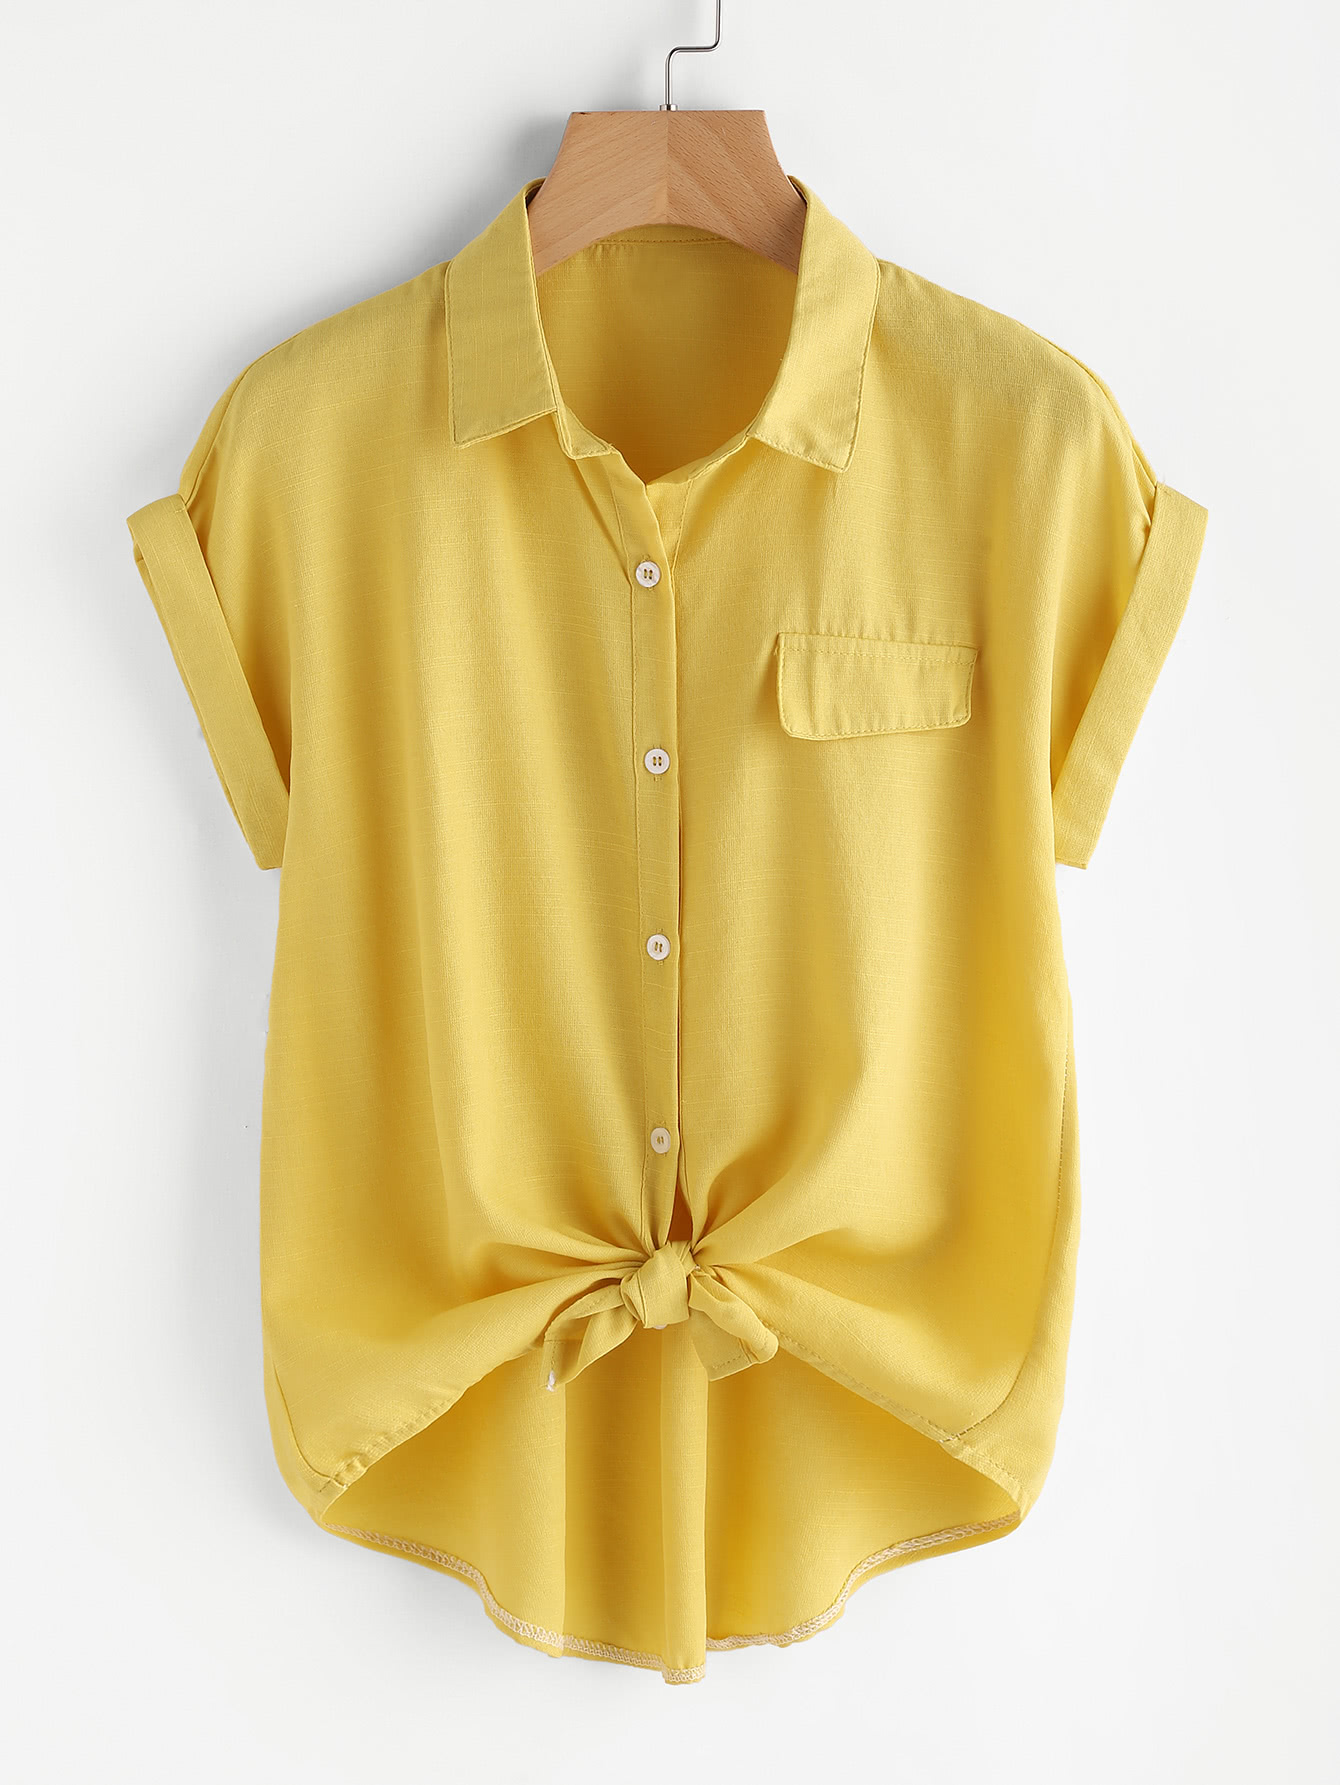 Rolled Cuff Knotted Hem Shirt solid rolled hem pants